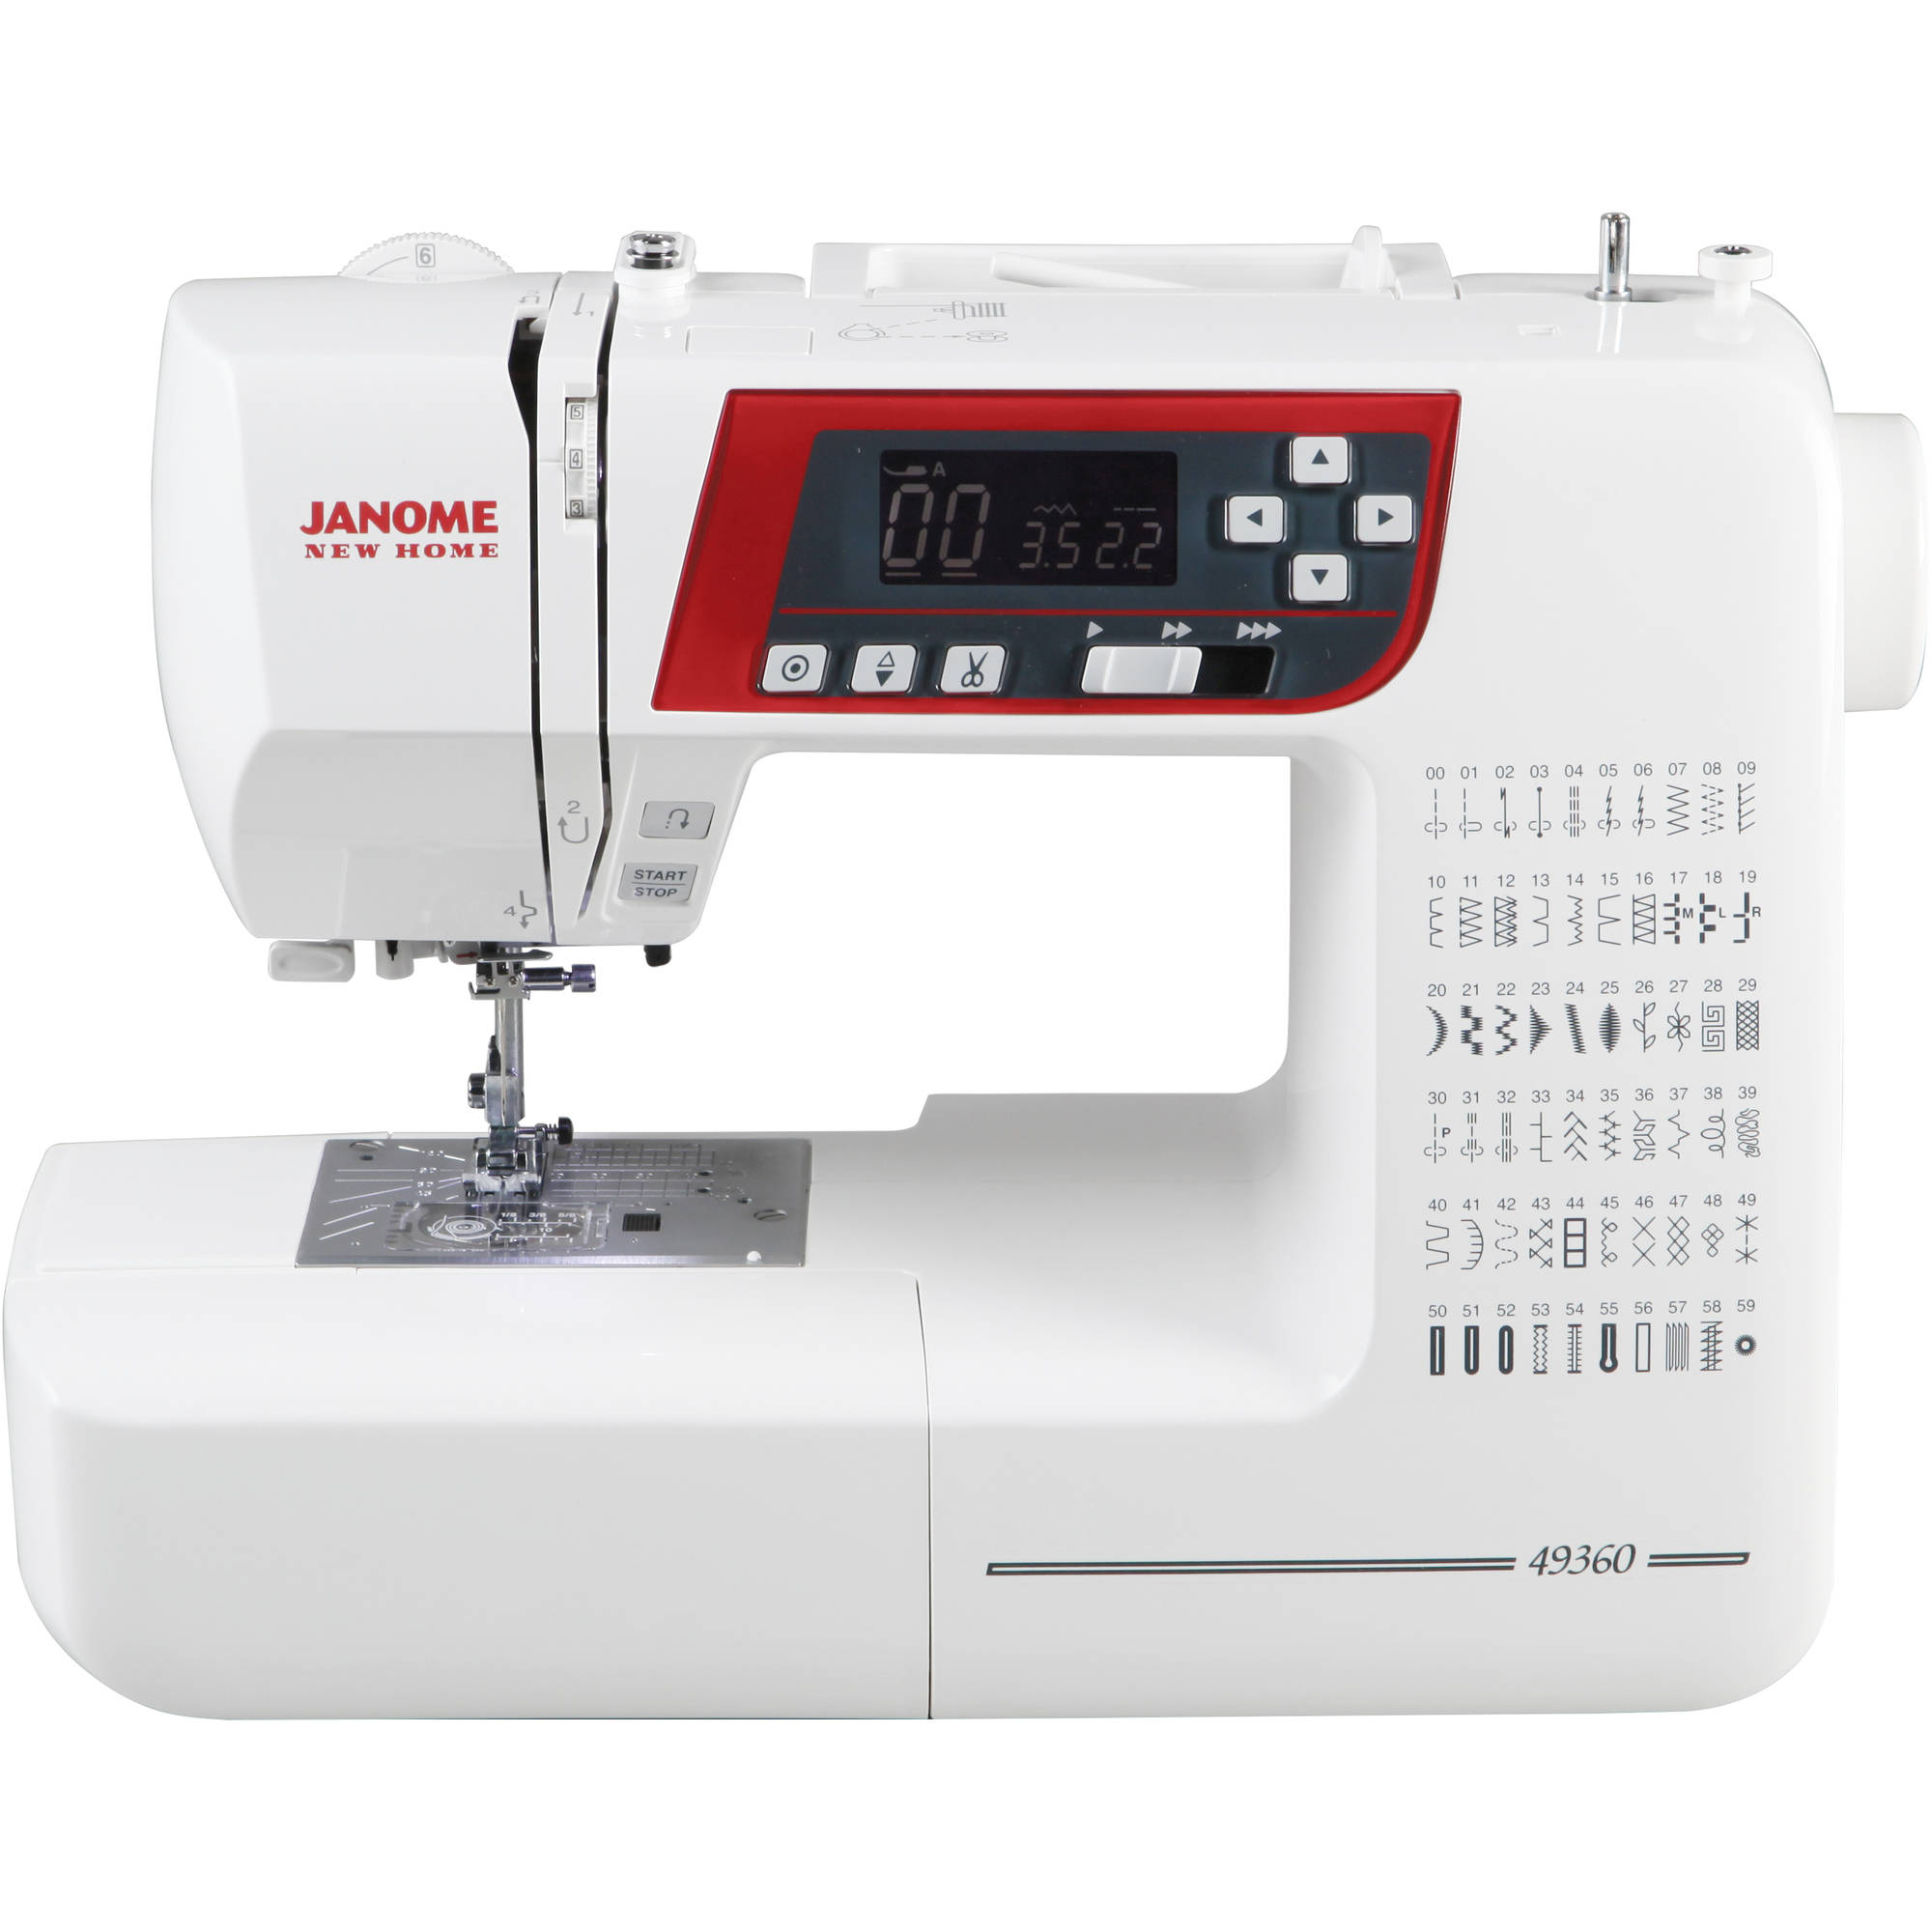 Janome 49360 High-End Quilting and Sewing Machine with Exclusive Superior Plus Feeding System, 60 Stitches, 6 1-Step Buttonholes, Memorized Needle Up/Down and LCD Screen